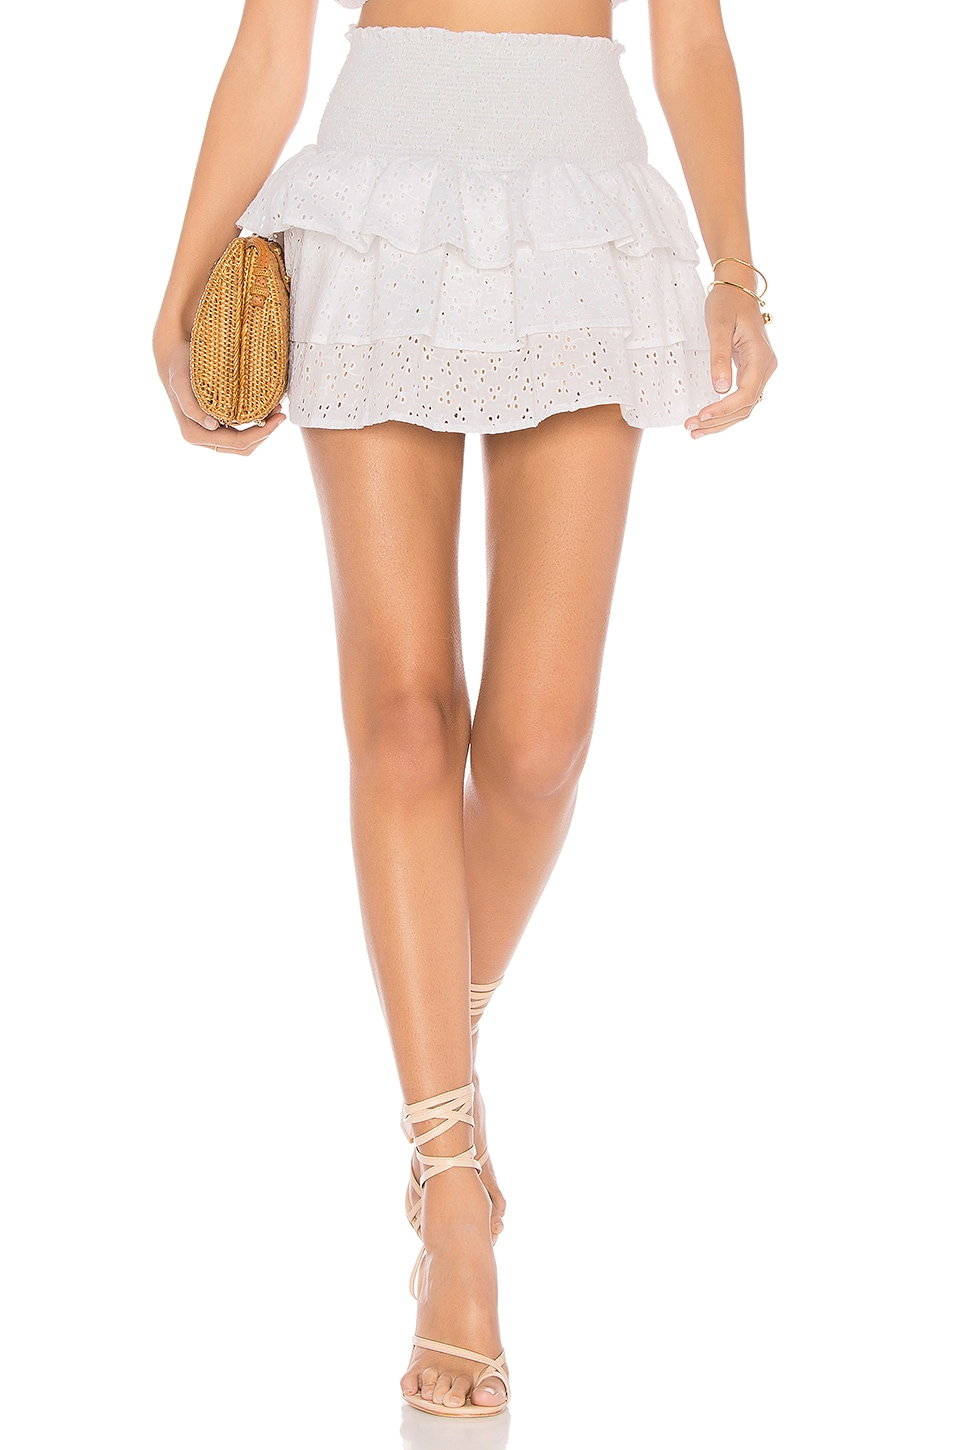 LOLLI SWIM X REVOLVE EYELET SKIRT